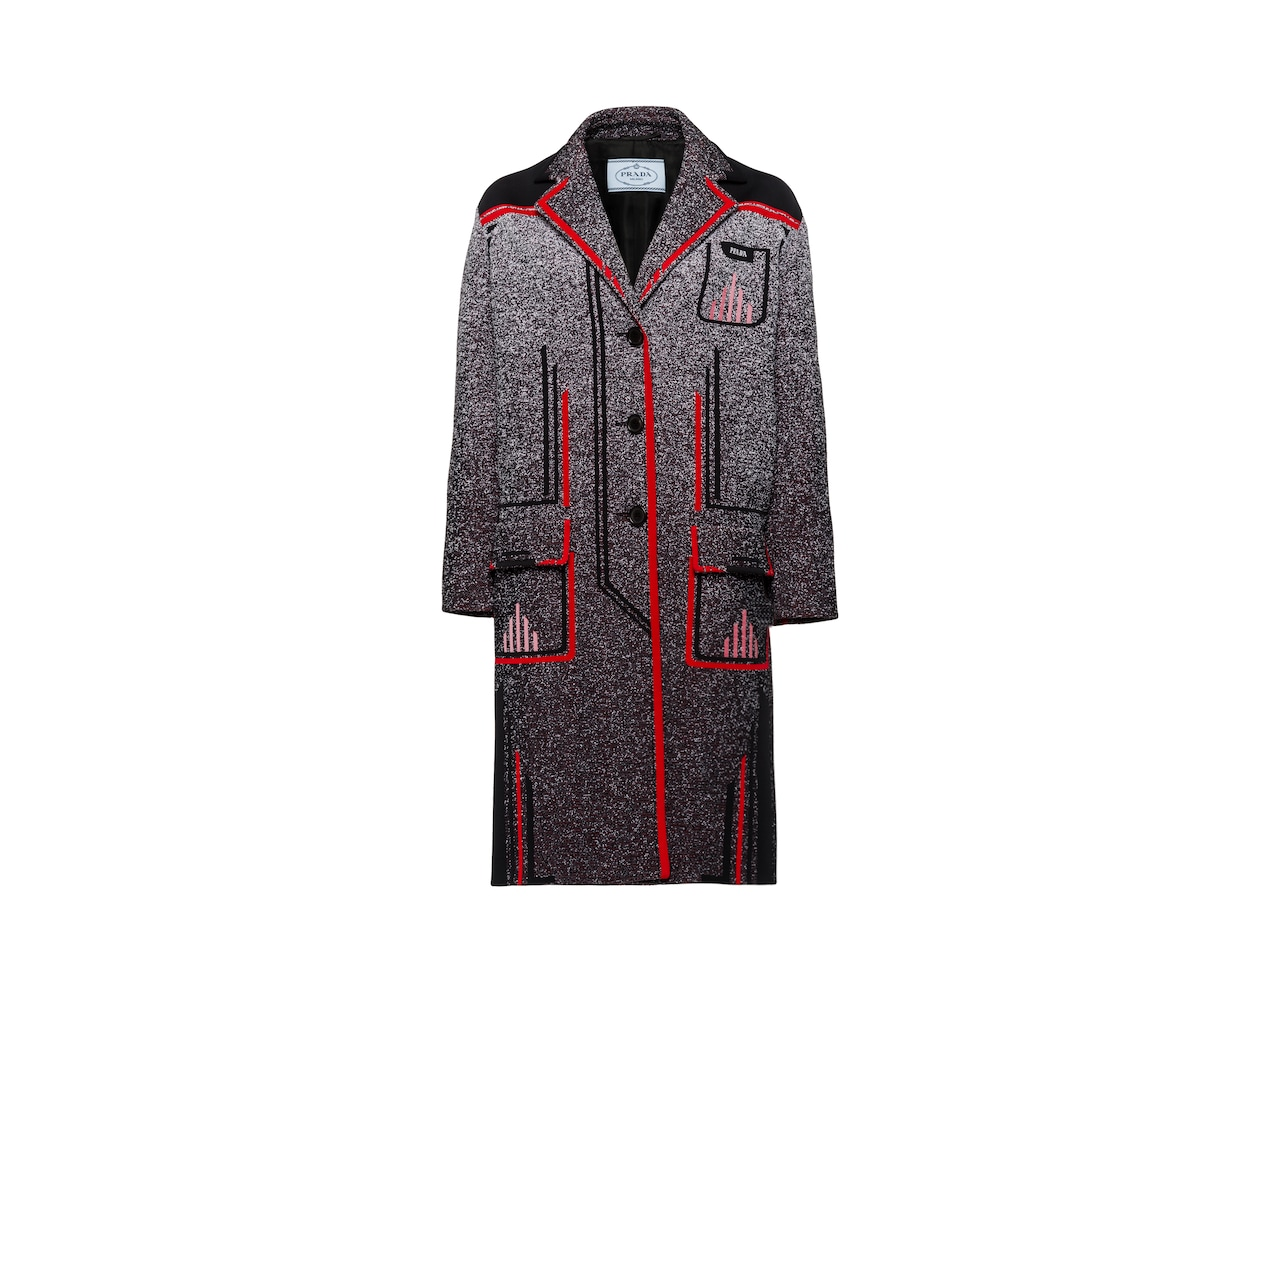 Technical mouliné jacquard coat